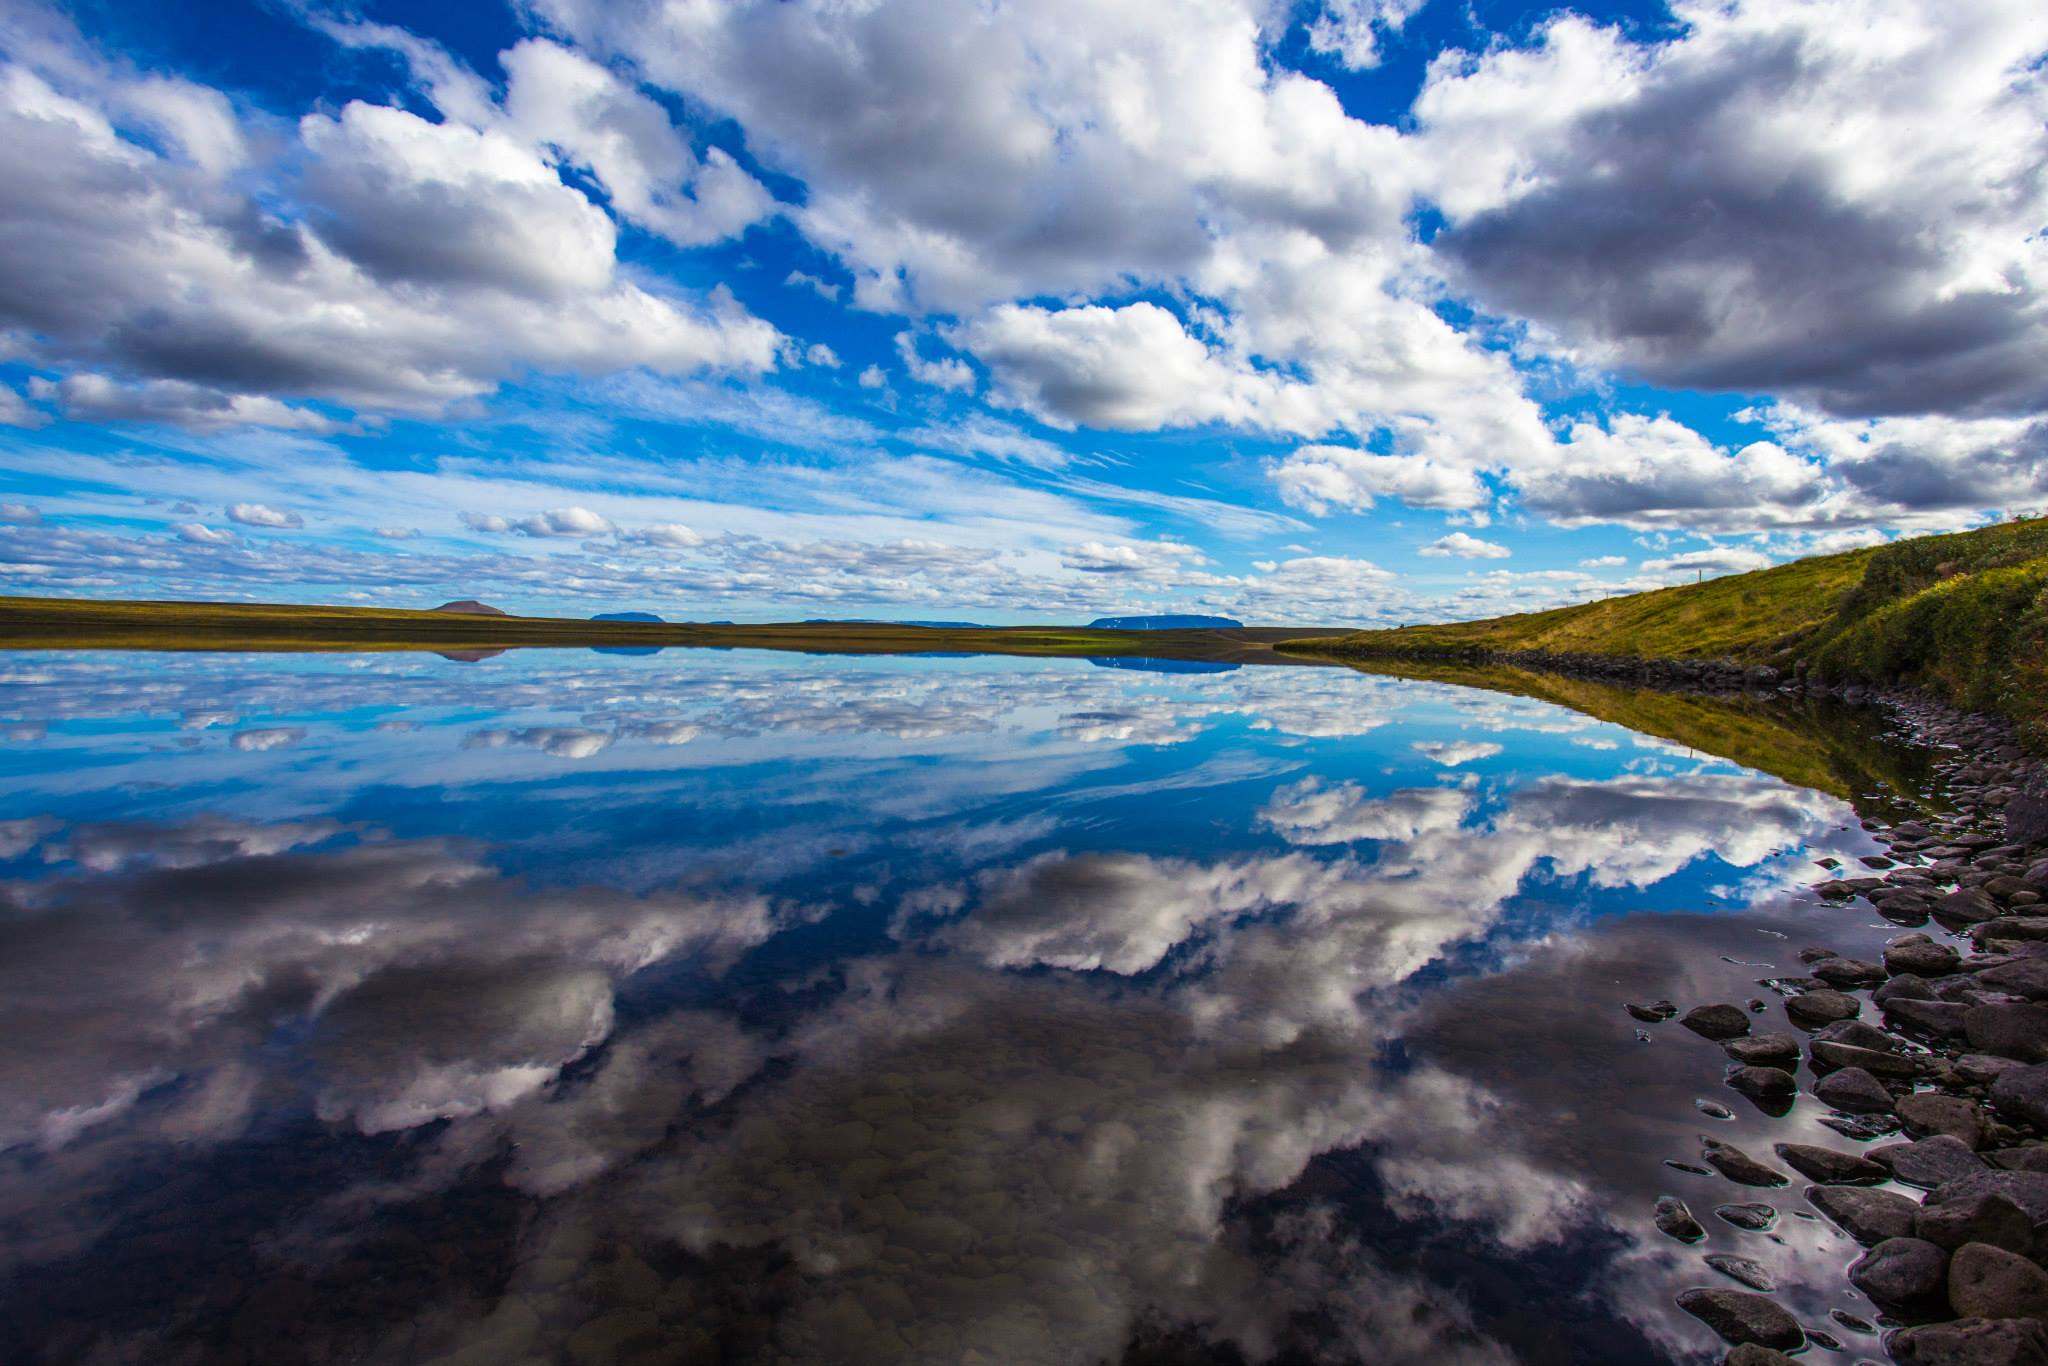 lake reflection thisworldexists dean chytraus iceland this world exists